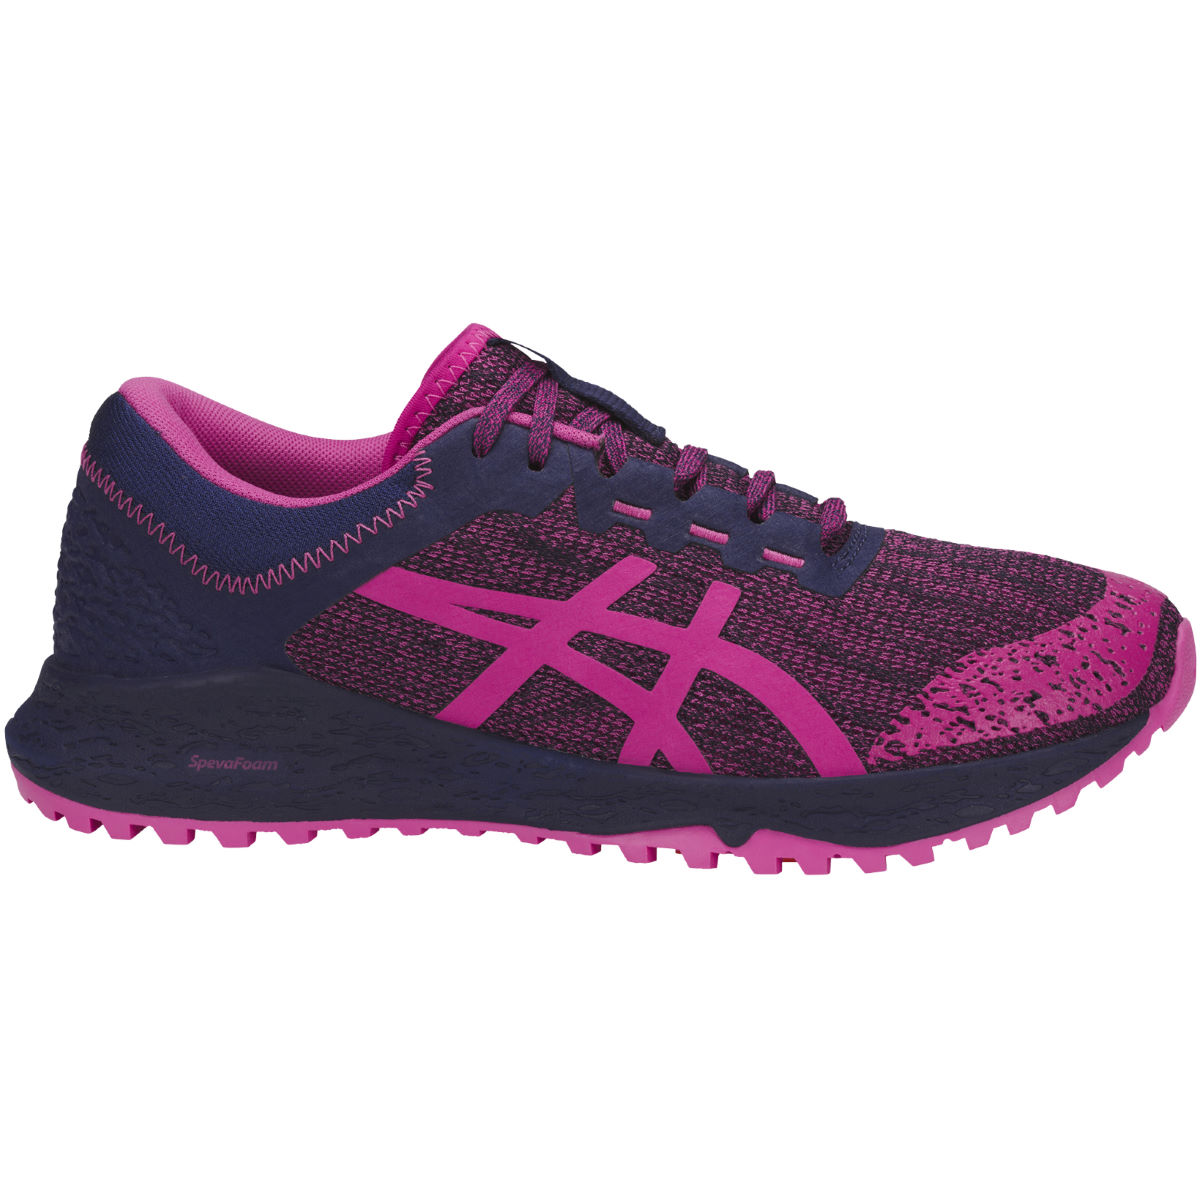 Asics Women's Alpine XT Shoes   Trail Shoes